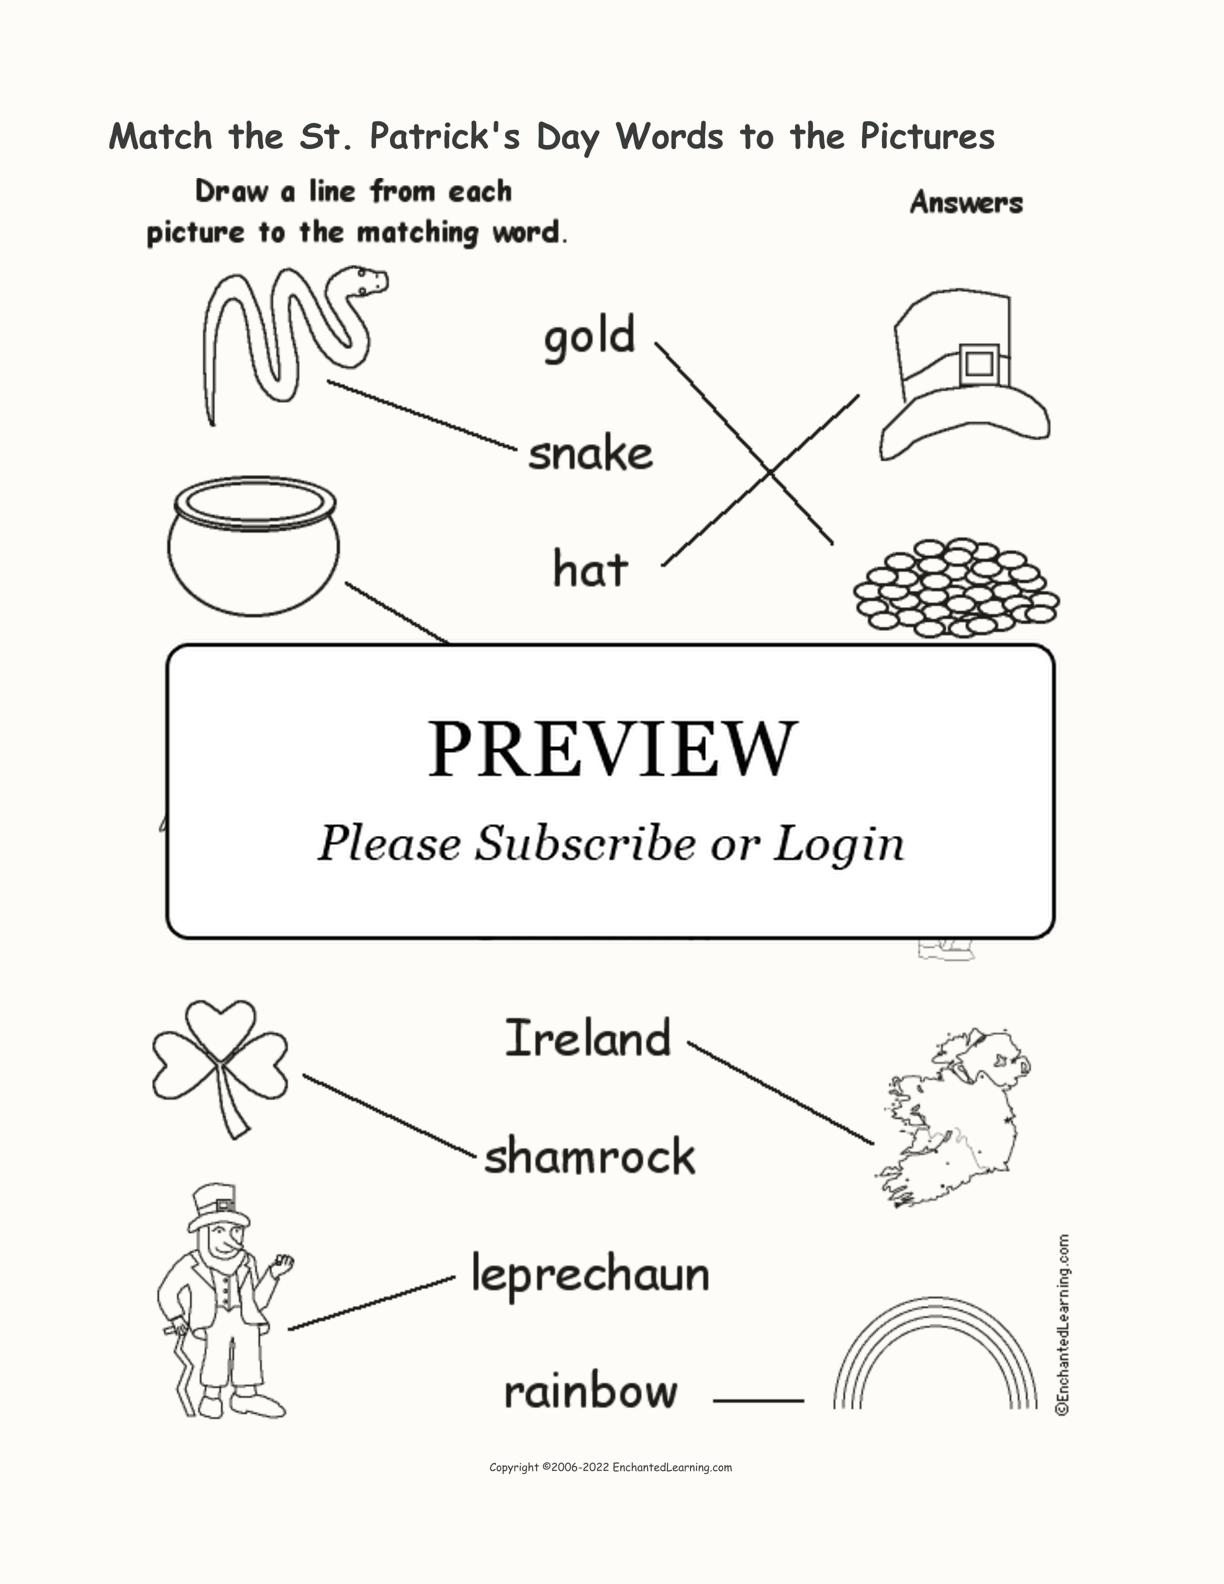 St. Patrick's Day - Match the Words to the Pictures interactive worksheet page 2